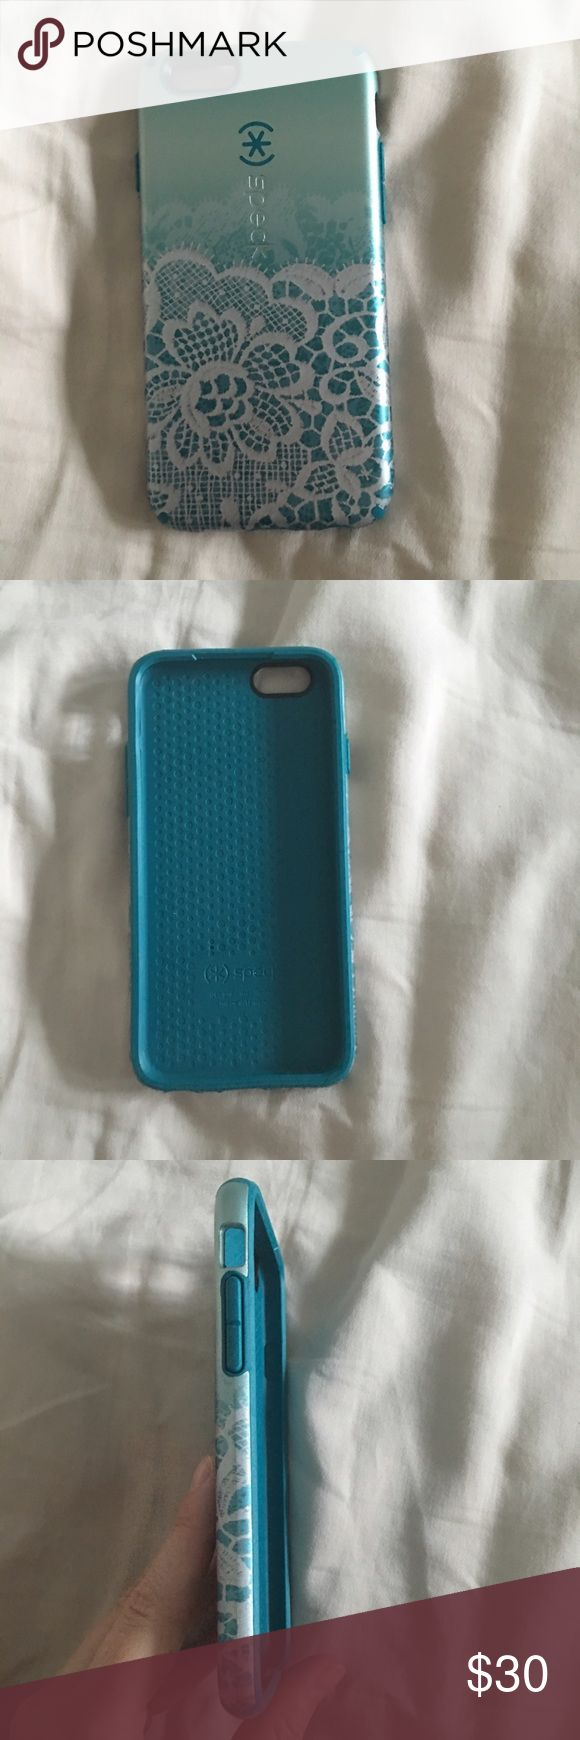 Speck iPhone 6 Case New and unused Speck Accessories Phone Cases